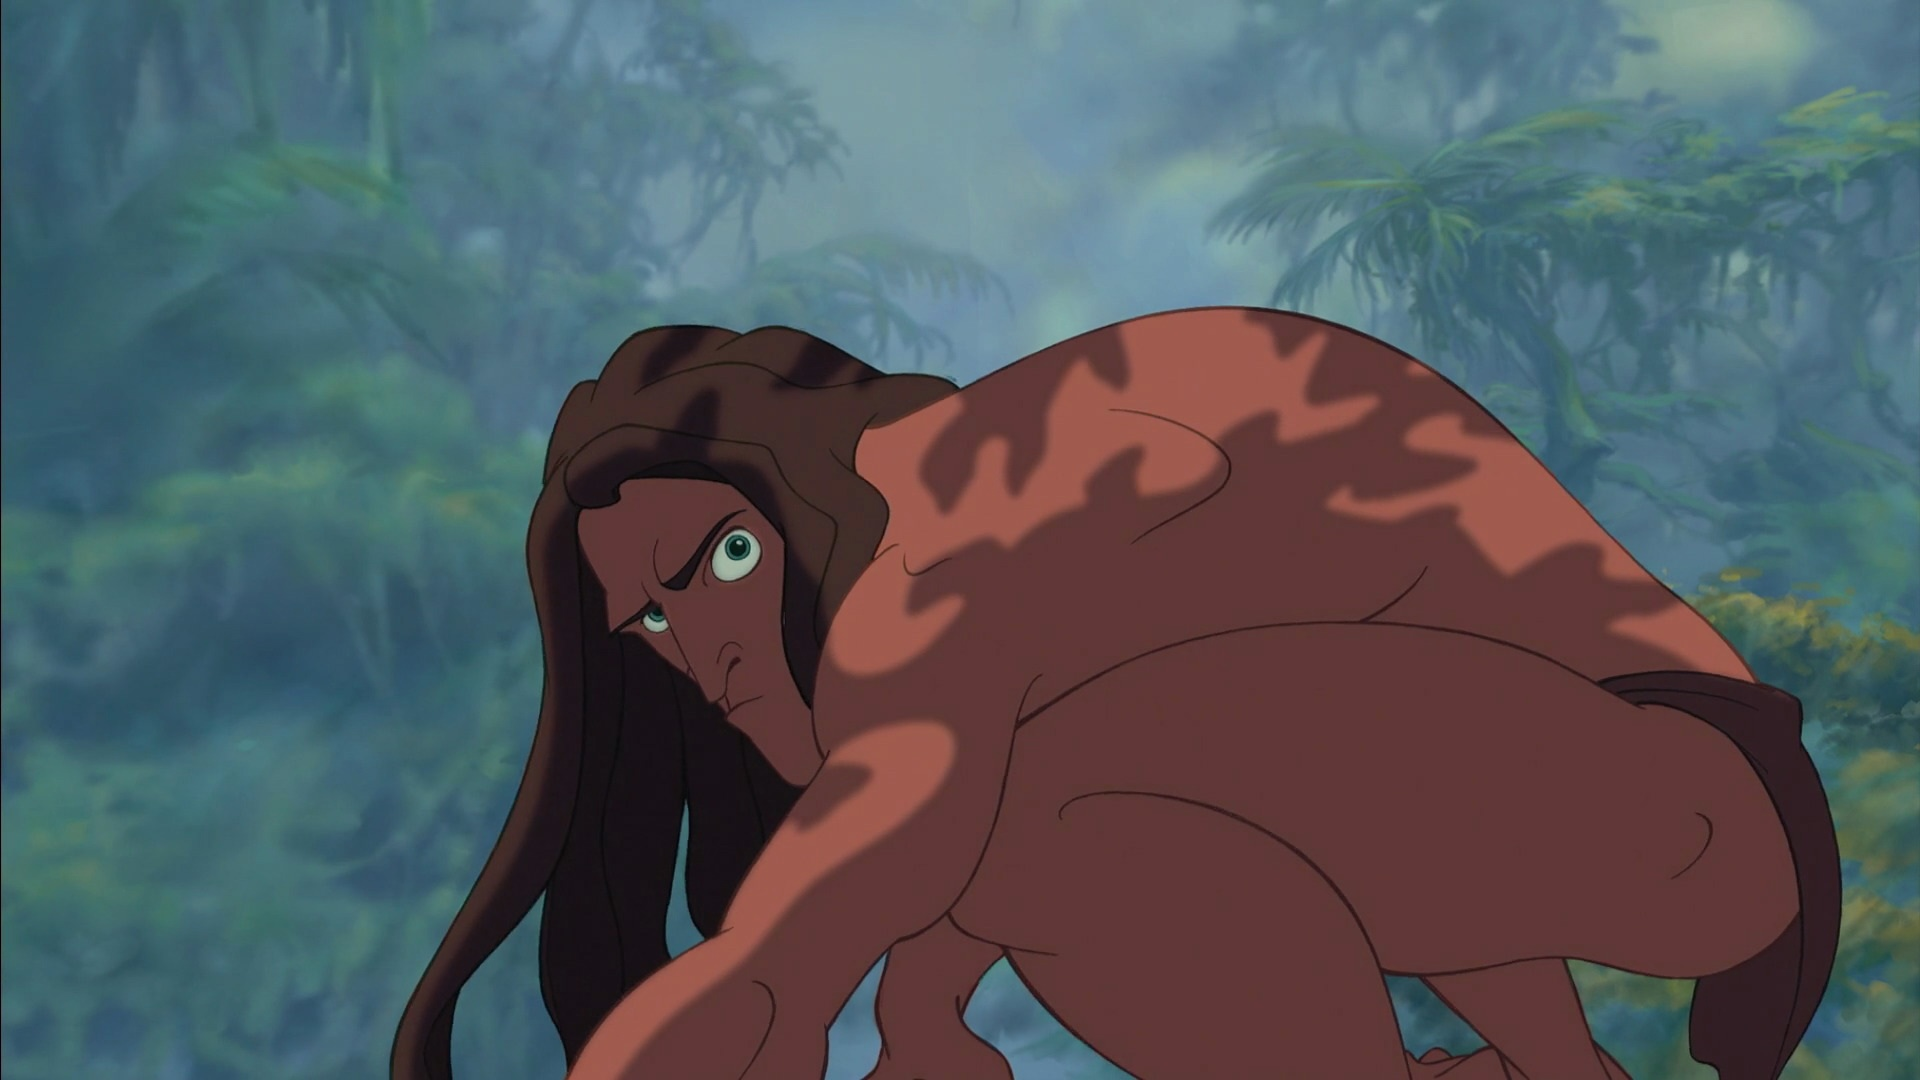 disney tarzan google search nic is tarzan pinterest